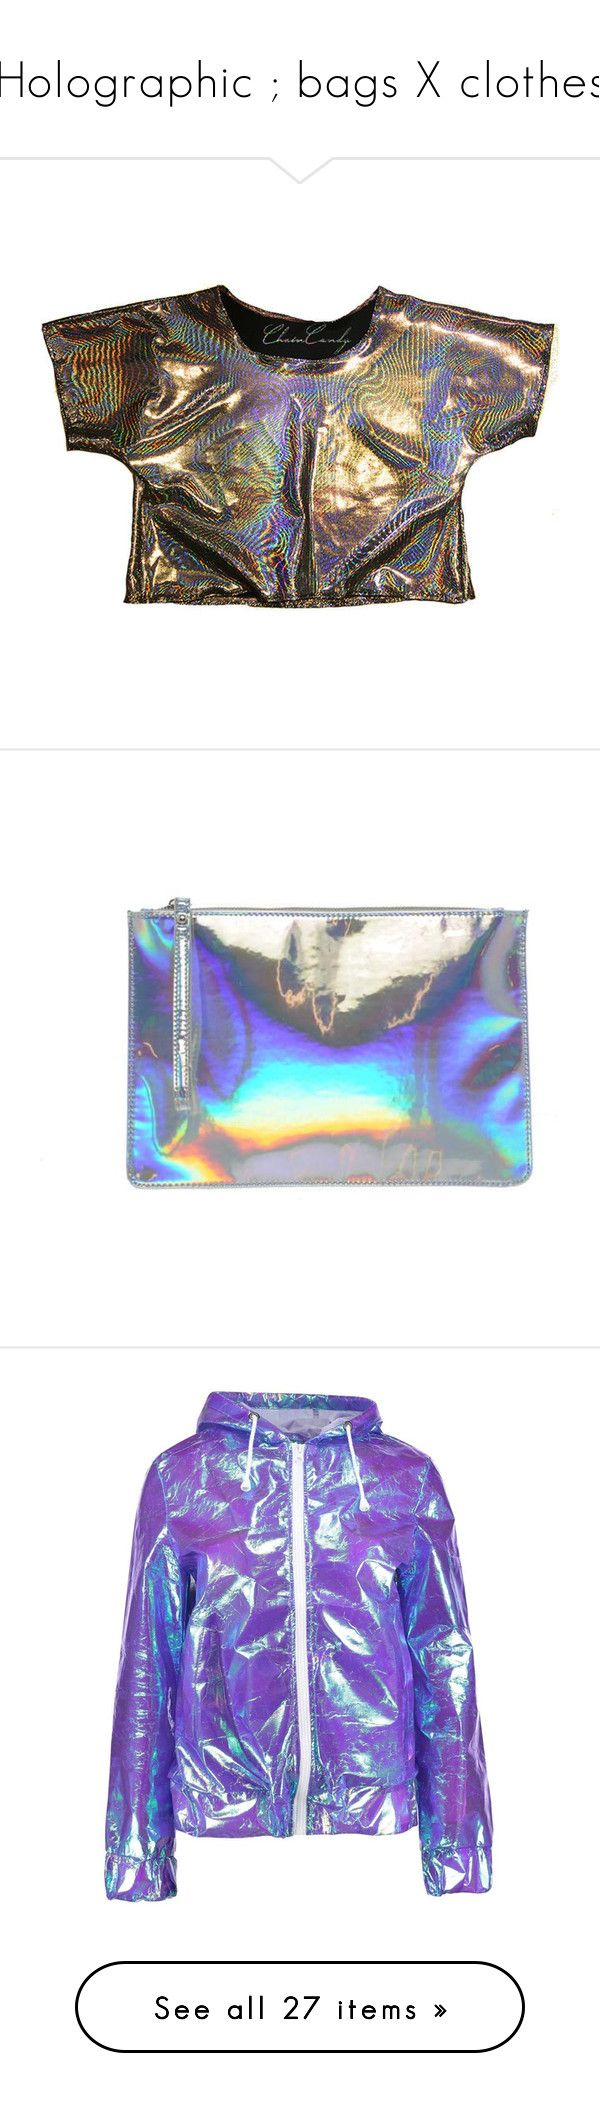 """Holographic ; bags X clothes"" by pinksemia ❤ liked on Polyvore featuring tops, t-shirts, crop top, relaxed tee, holographic top, cropped tops, relaxed fit tee, holographic t shirt, bags and handbags"